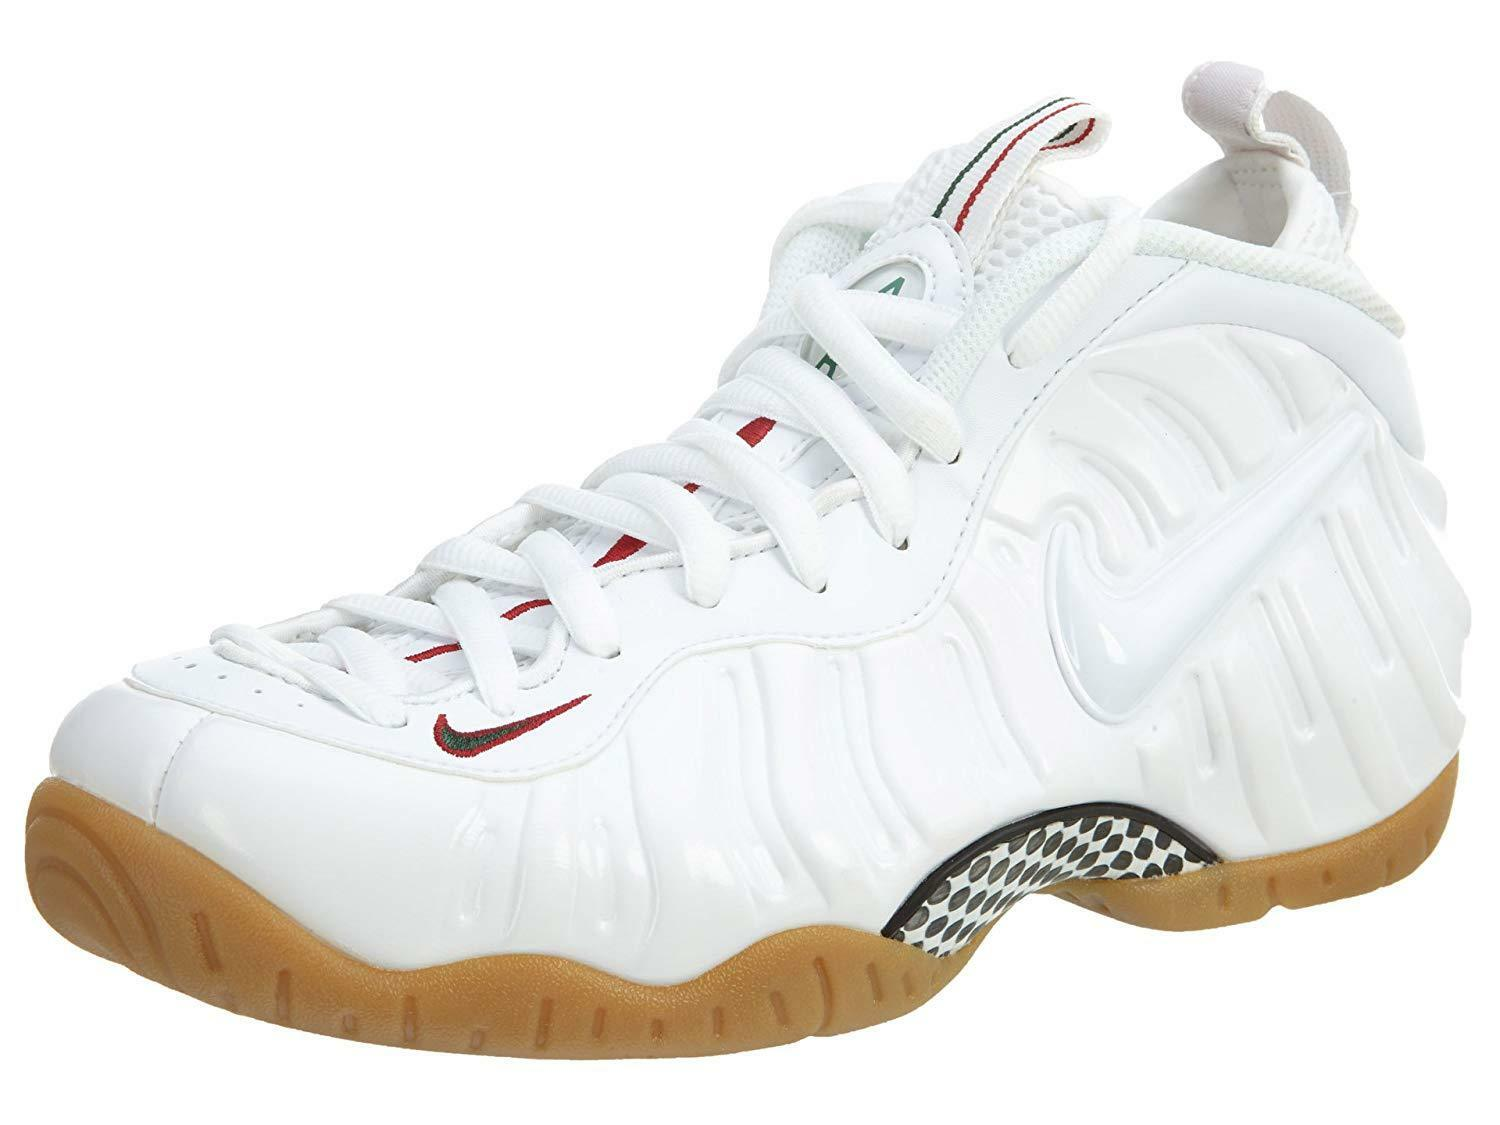 Nike MENS Air Foamposite Pro - 624041 007 white SOLD OUT LIMITED SIZE 7.5 US M